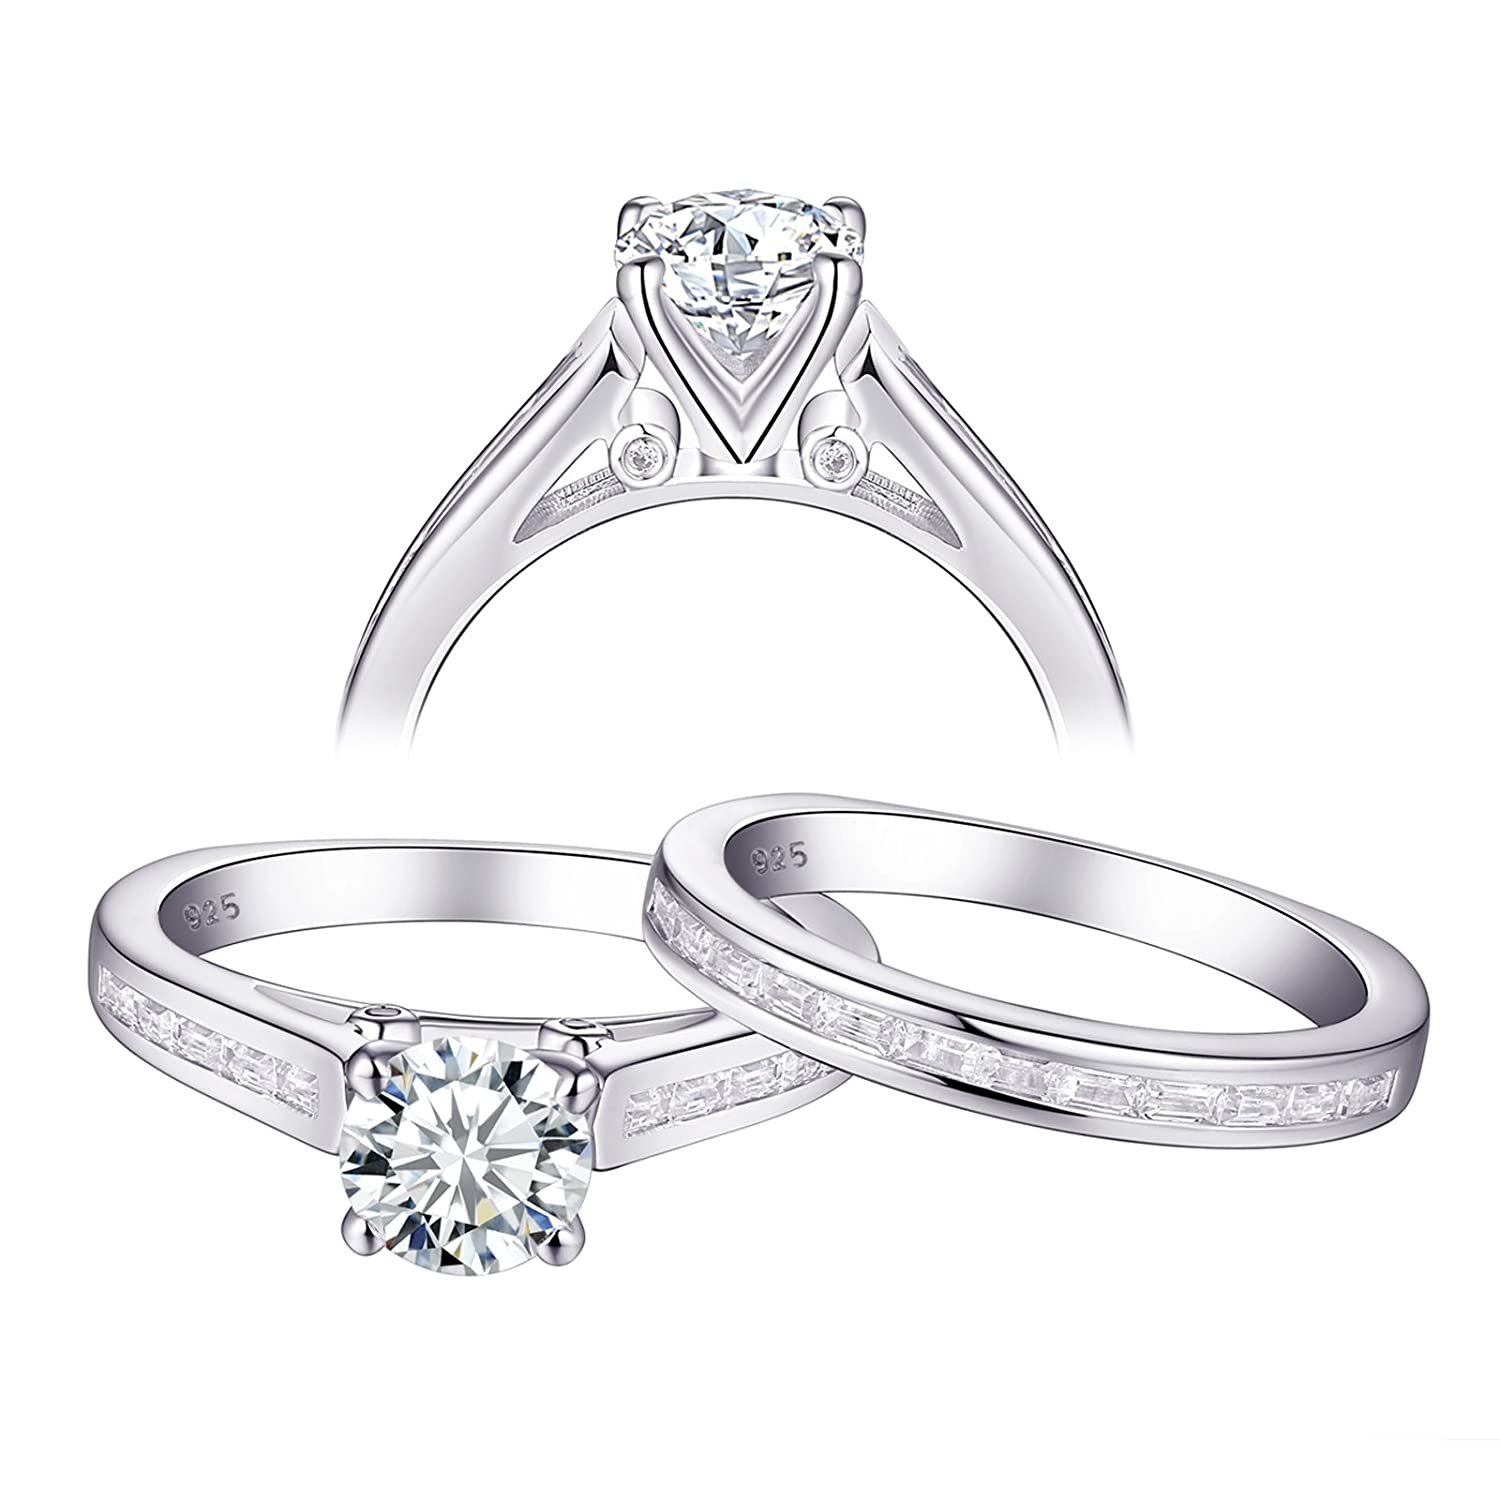 a5038e81e5 Amazon.com: Newshe Jewellery Engagement Wedding Ring Set for Women 925  Sterling Silver White AAA Cz 1.3ct Size 5-10: Jewelry